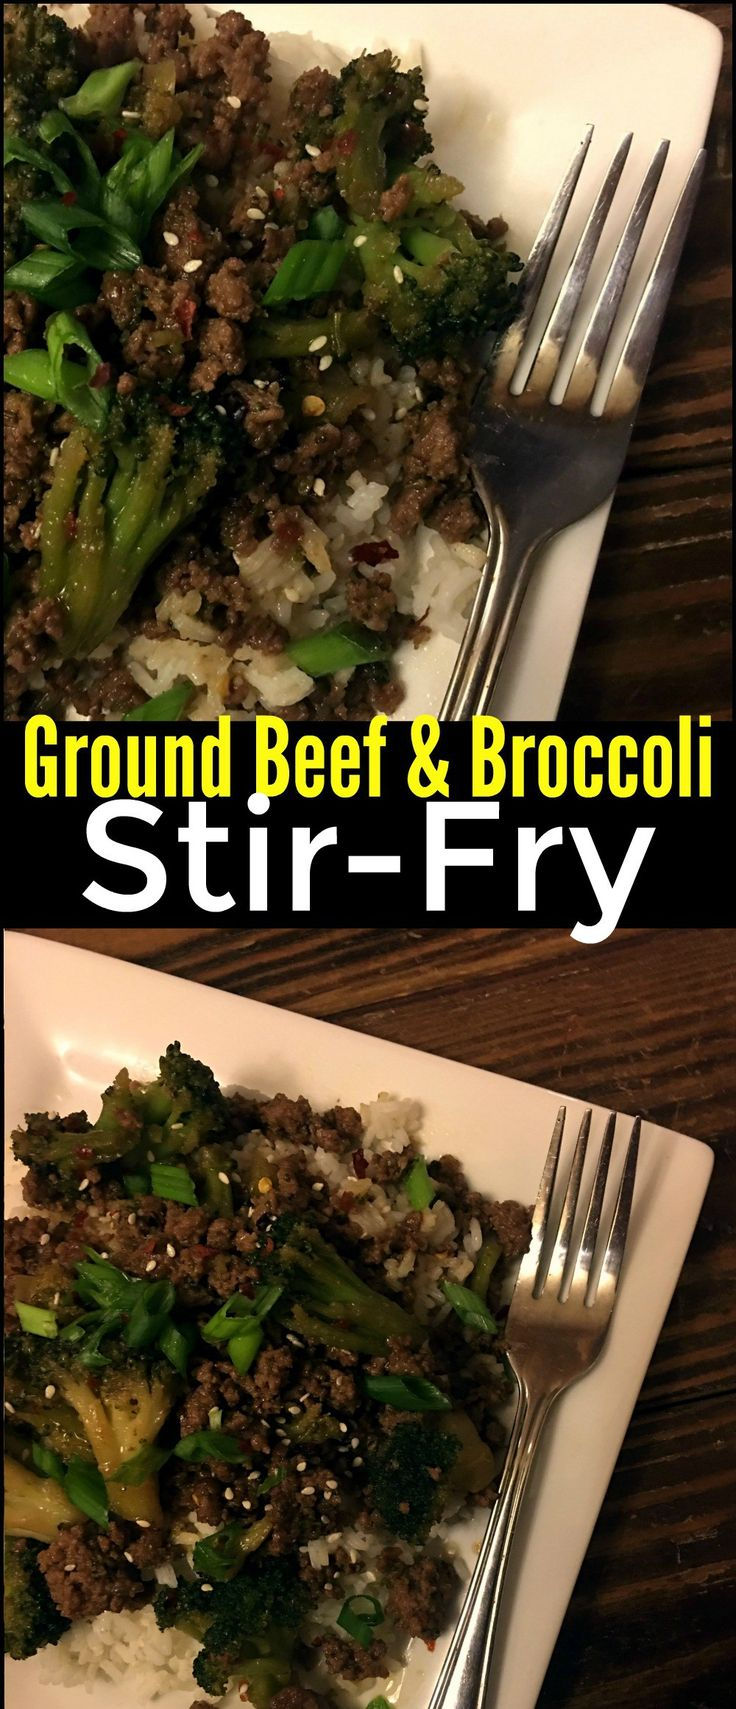 Ground Beef & Broccoli Stir Fry DEFINITELY DONT USE 1/2 cup brown sugar it's too sweet only use like 1/4 cup brown sugar and keep the recipe the same